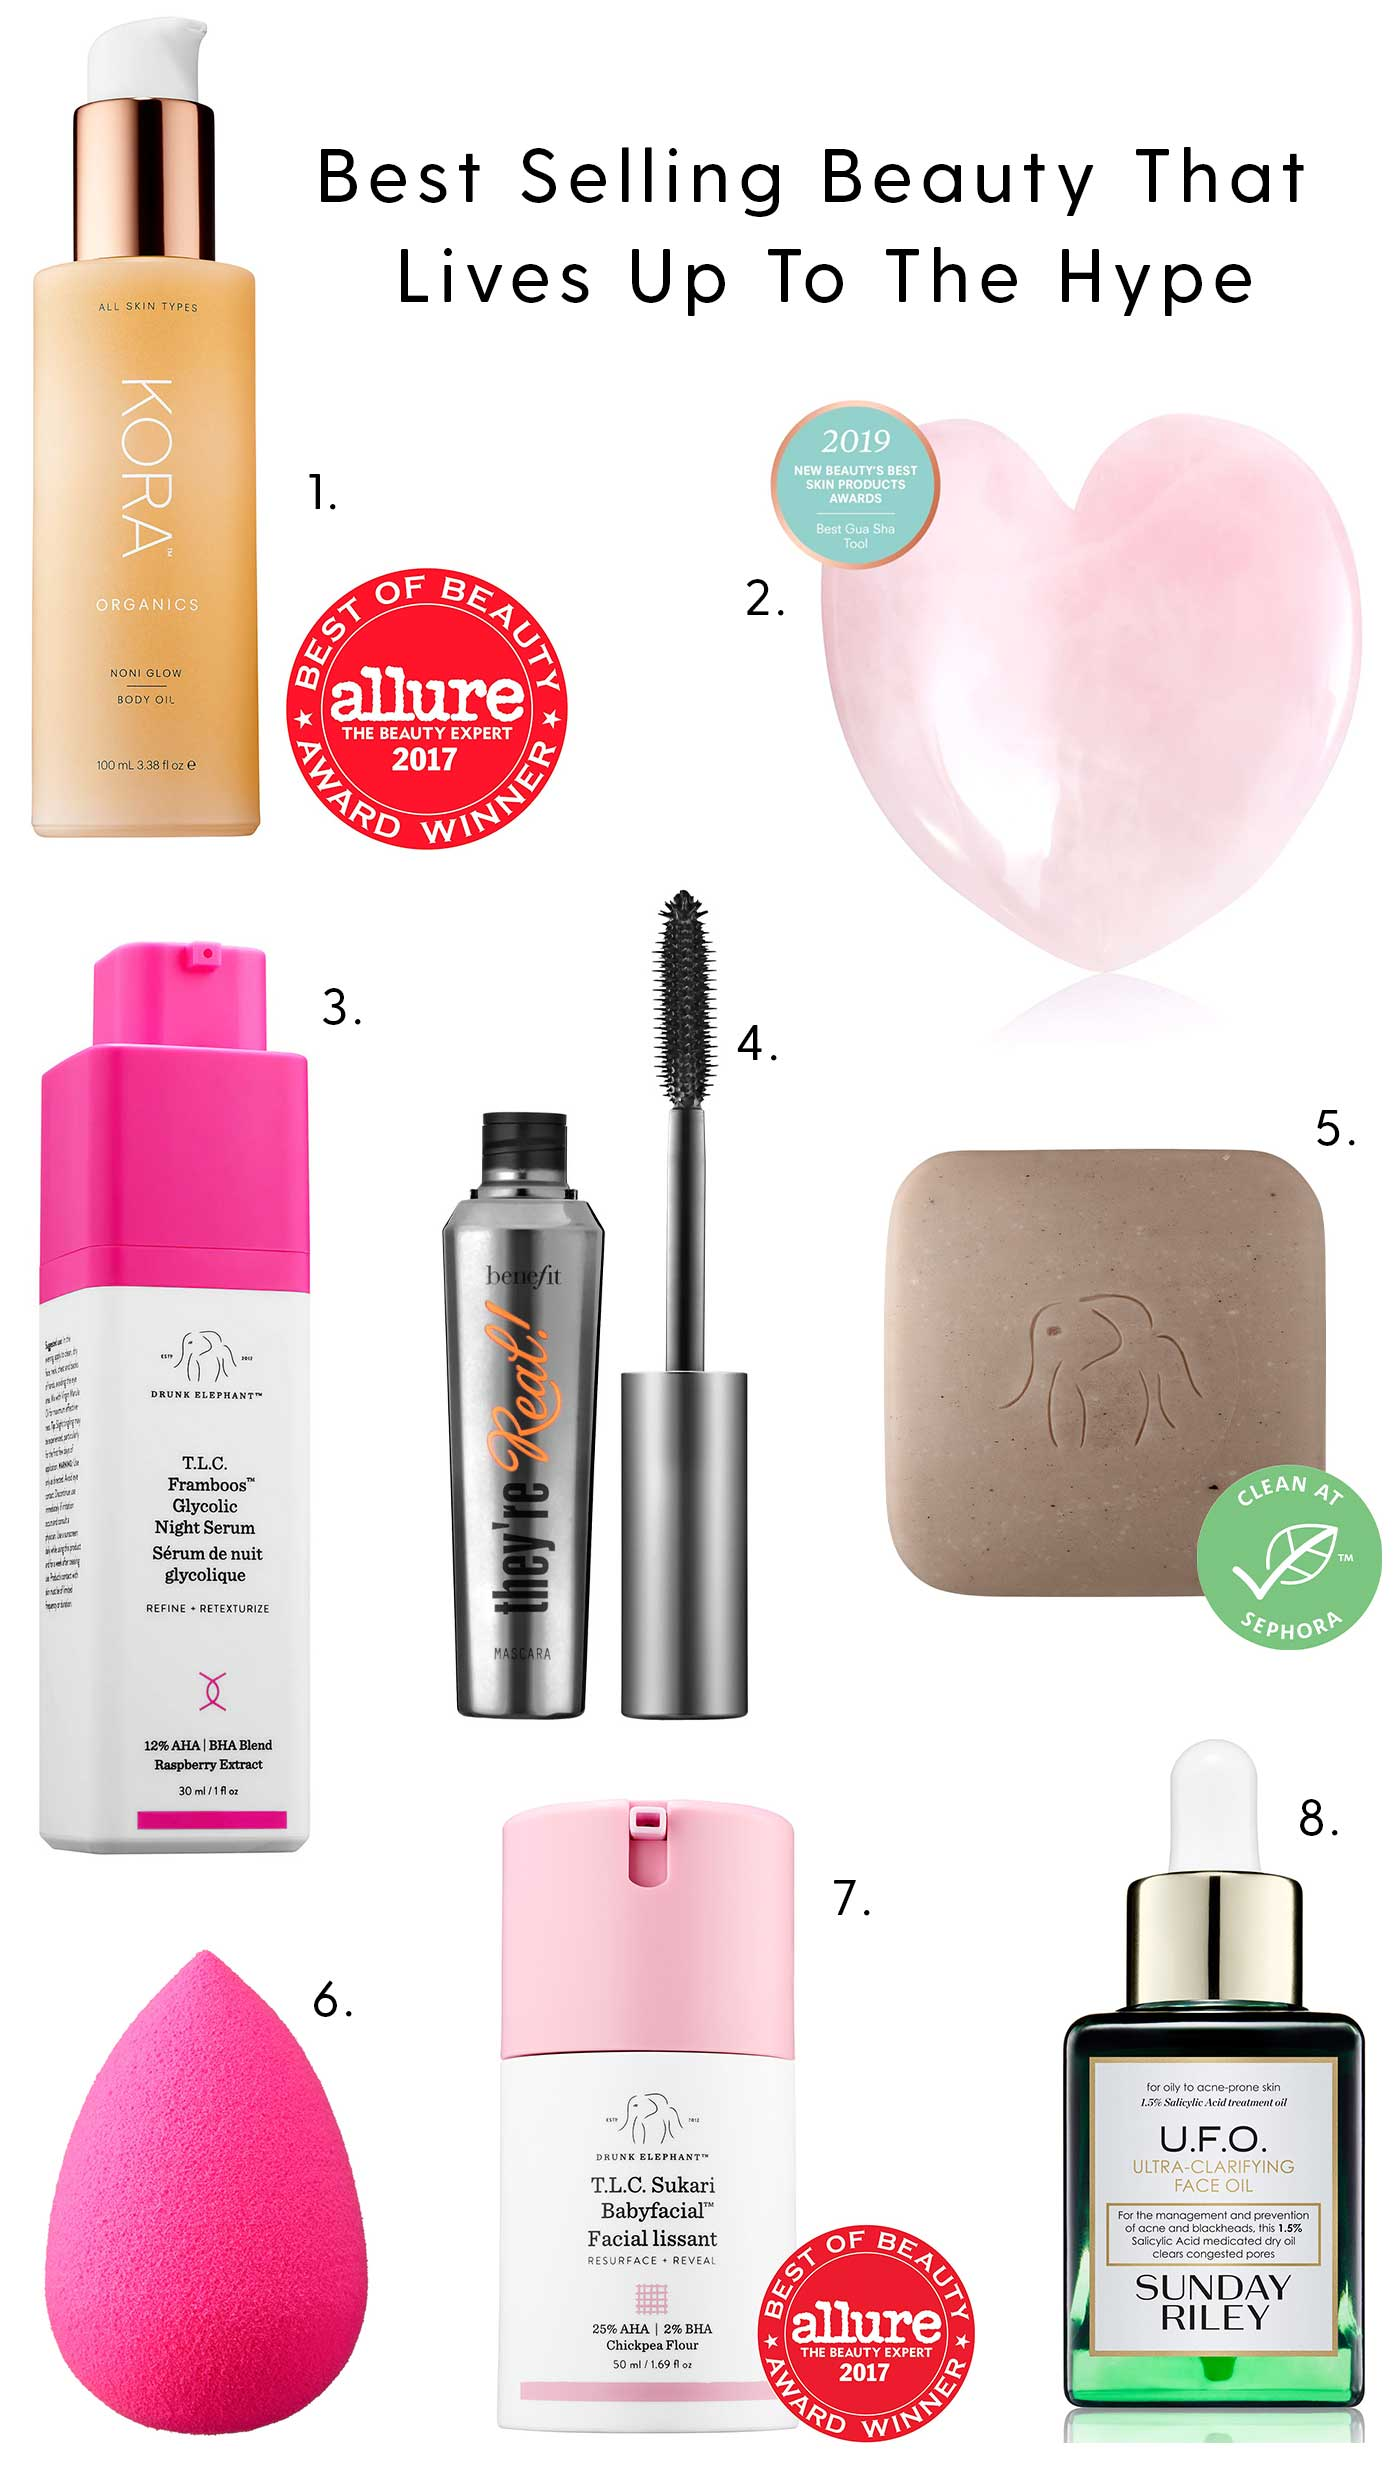 best-selling-beauty-products-that-live-up-to-the-hype-top-rated